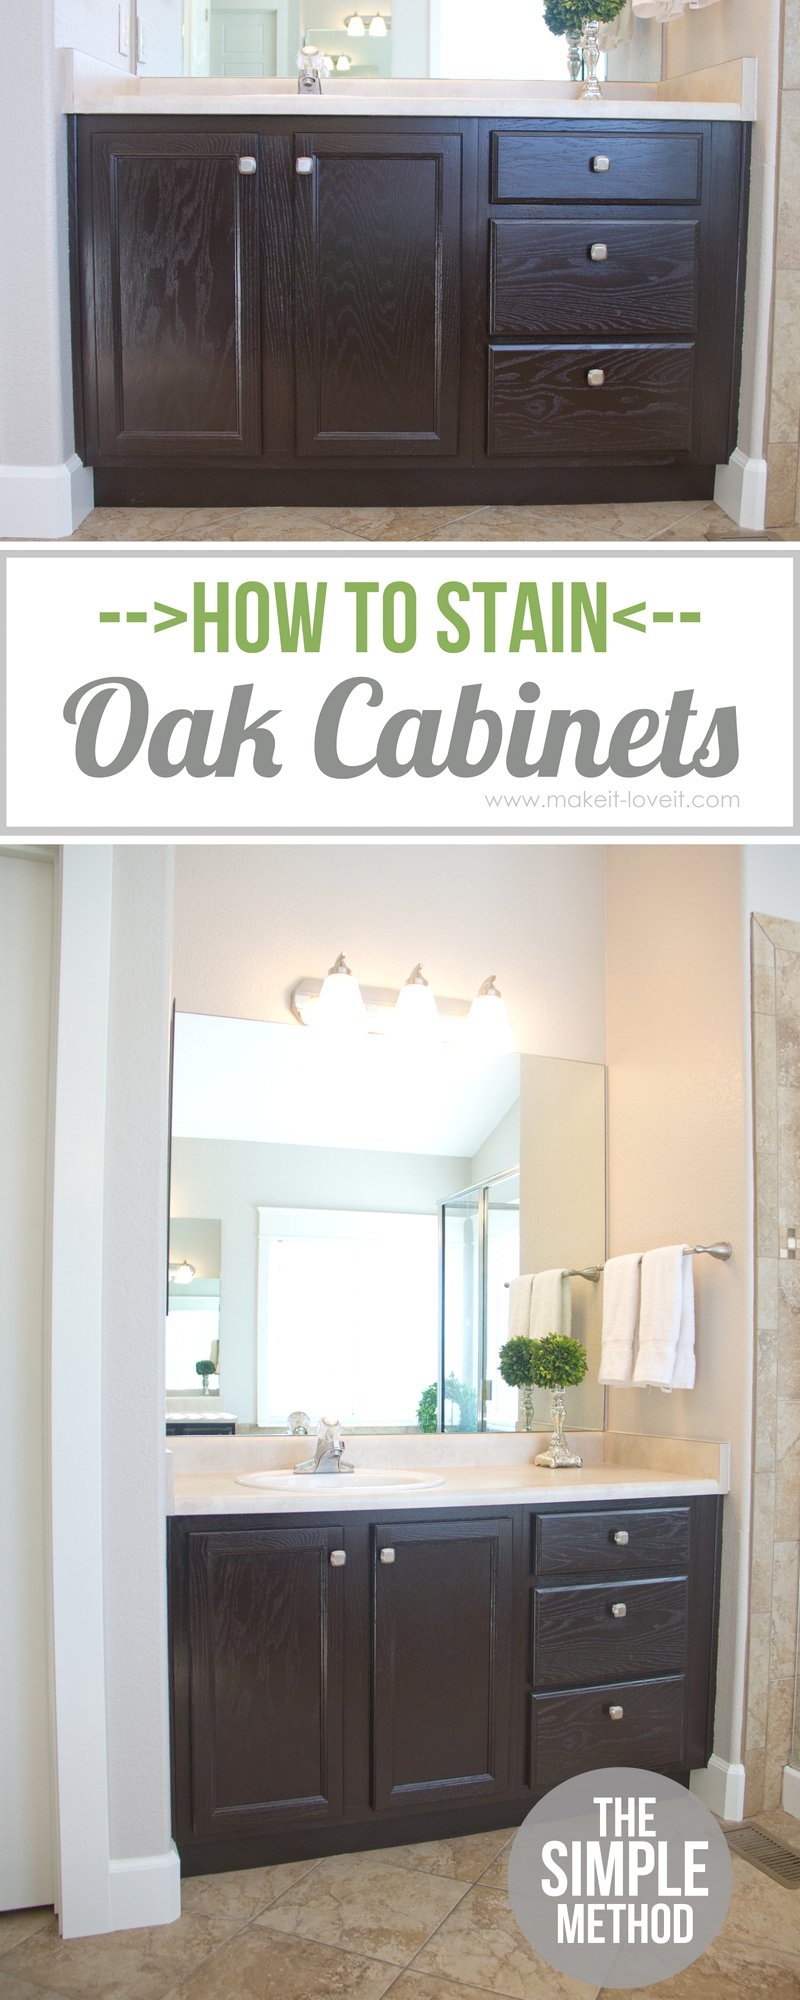 staining oak kitchen cabinets how to stain oak cabinets the simple method without 26596